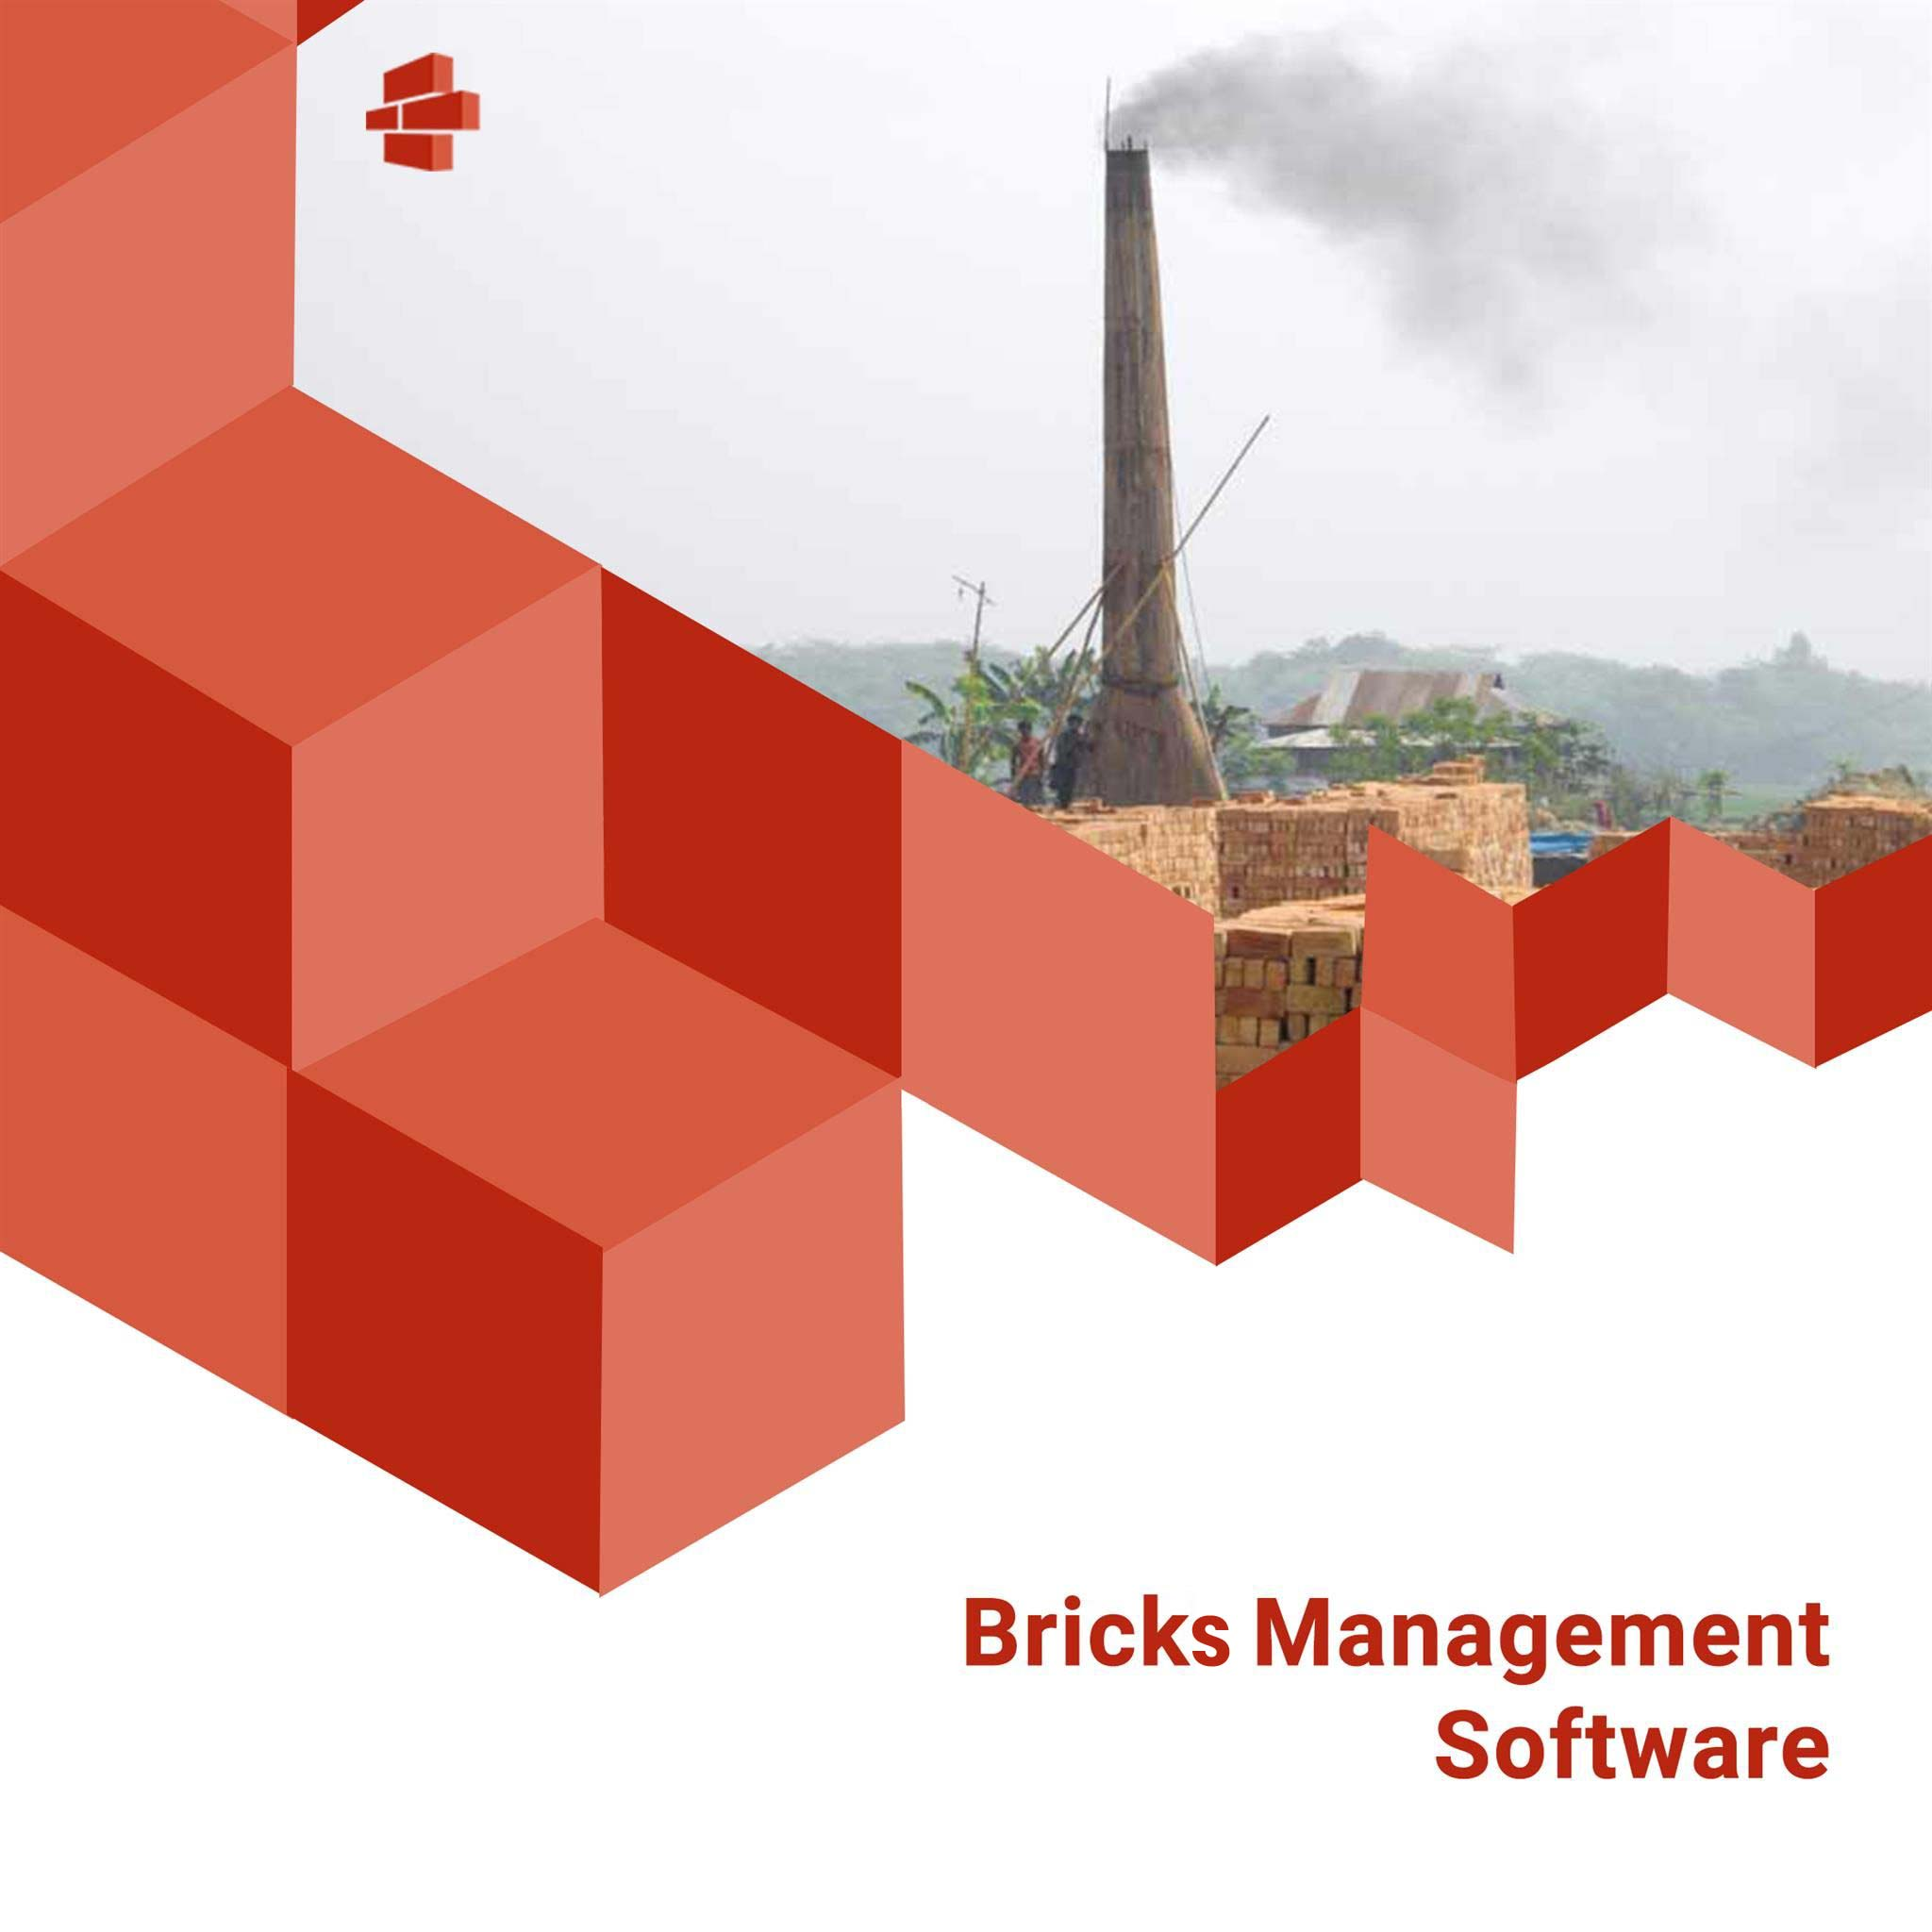 Bricks Management Software at Versatile